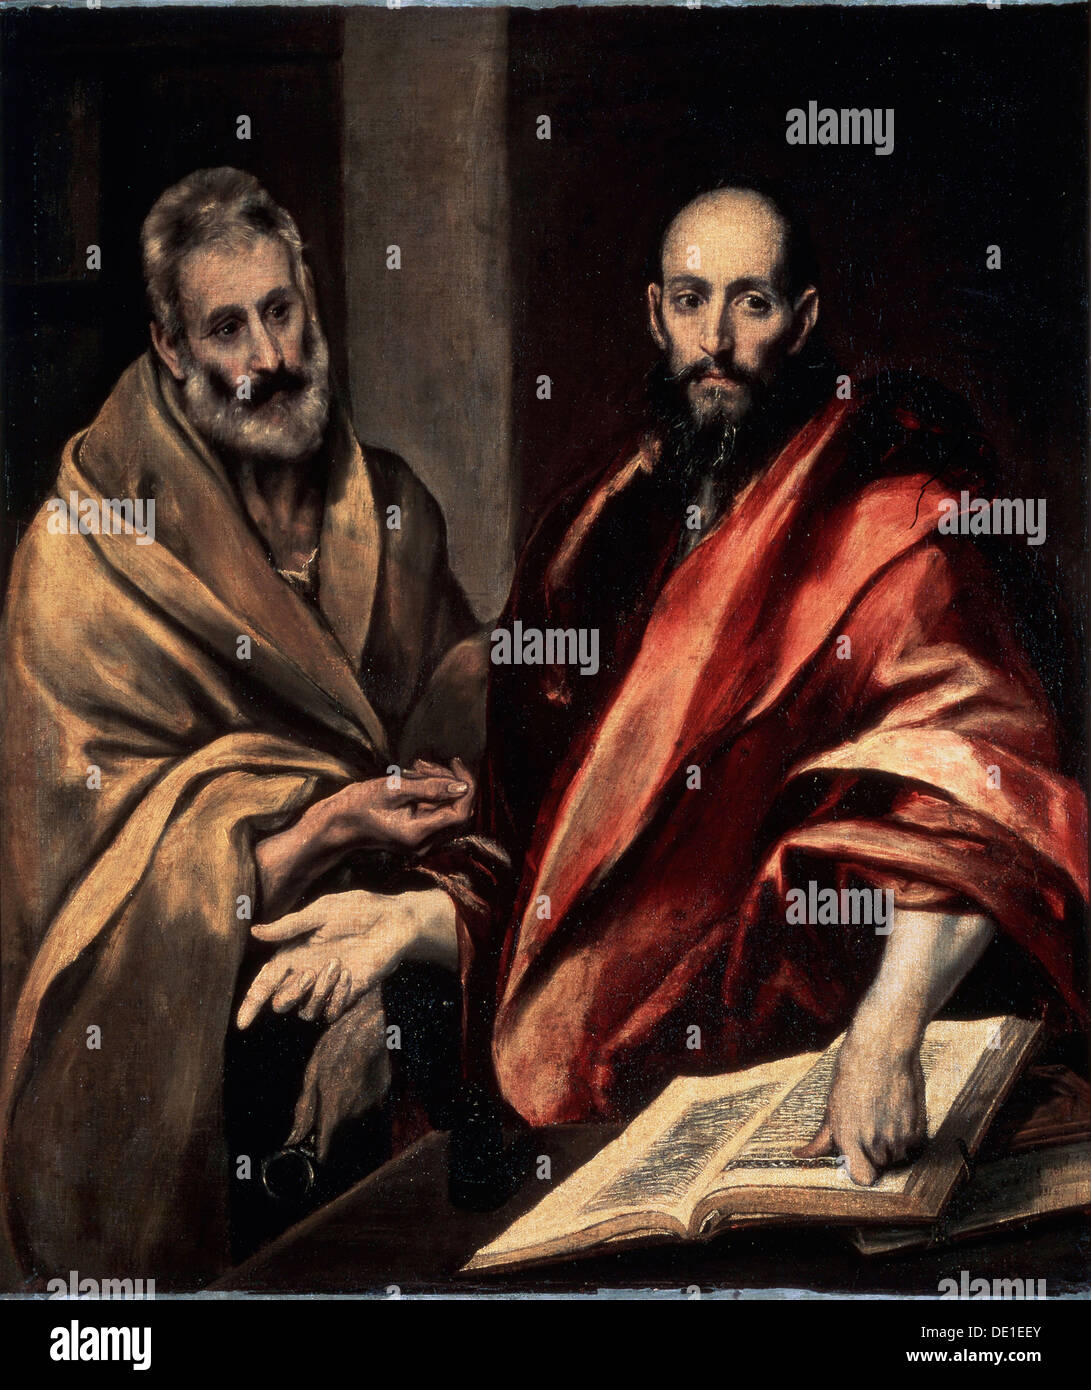 'The Apostles St. Peter and St. Paul', 1587-1592.  Artist: El Greco - Stock Image